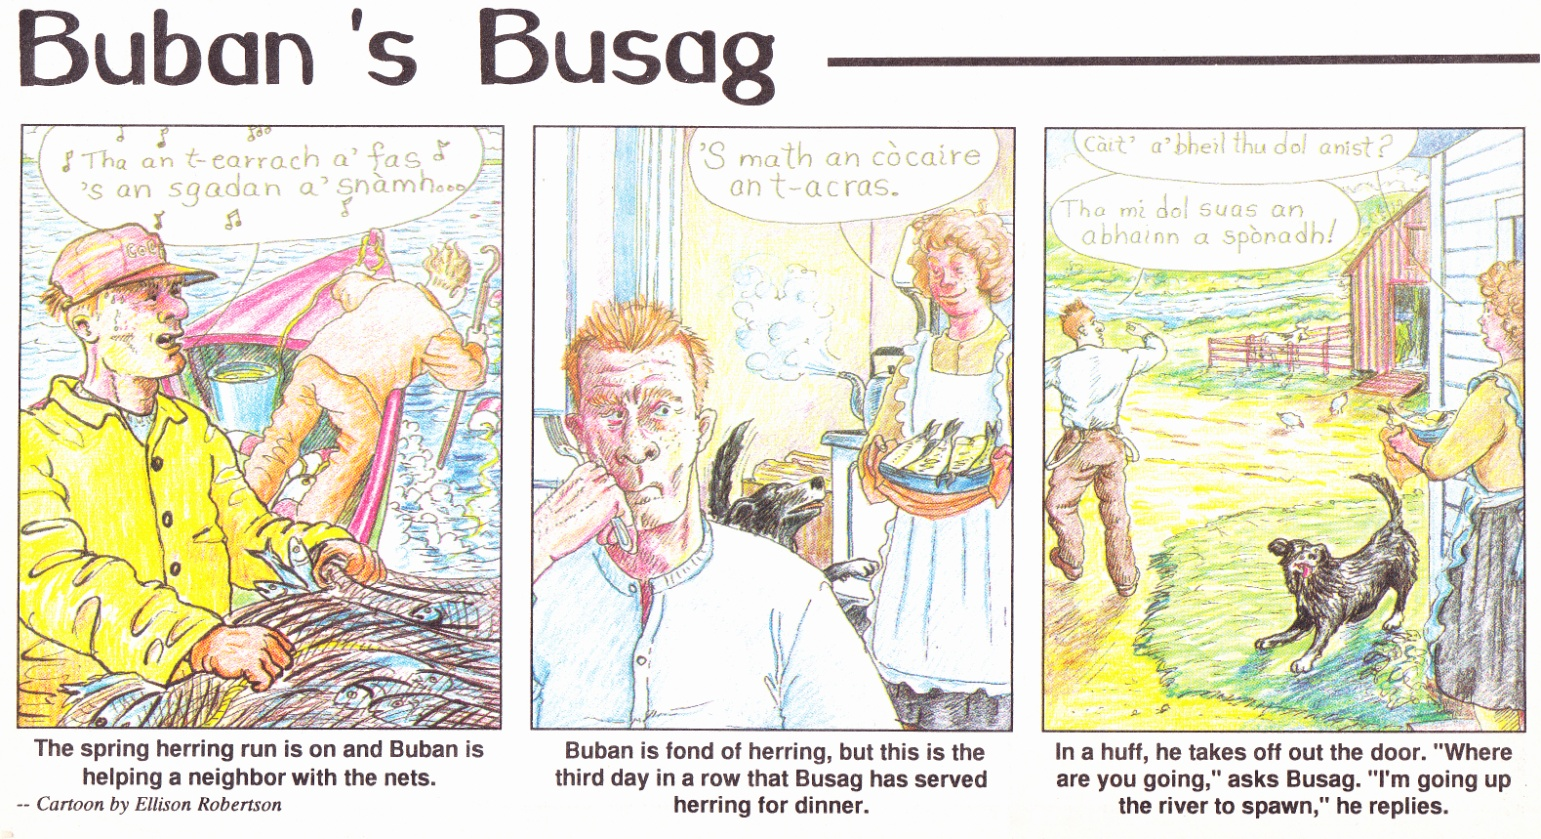 C:\Users\Robert\Documents\CARTOONING ILLUSTRATION ANIMATION\IMAGE CARTOON\IMAGE CARTOON B\BUBAN AND BUSAG, AmBraighe, Spring 1995,  28.jpg